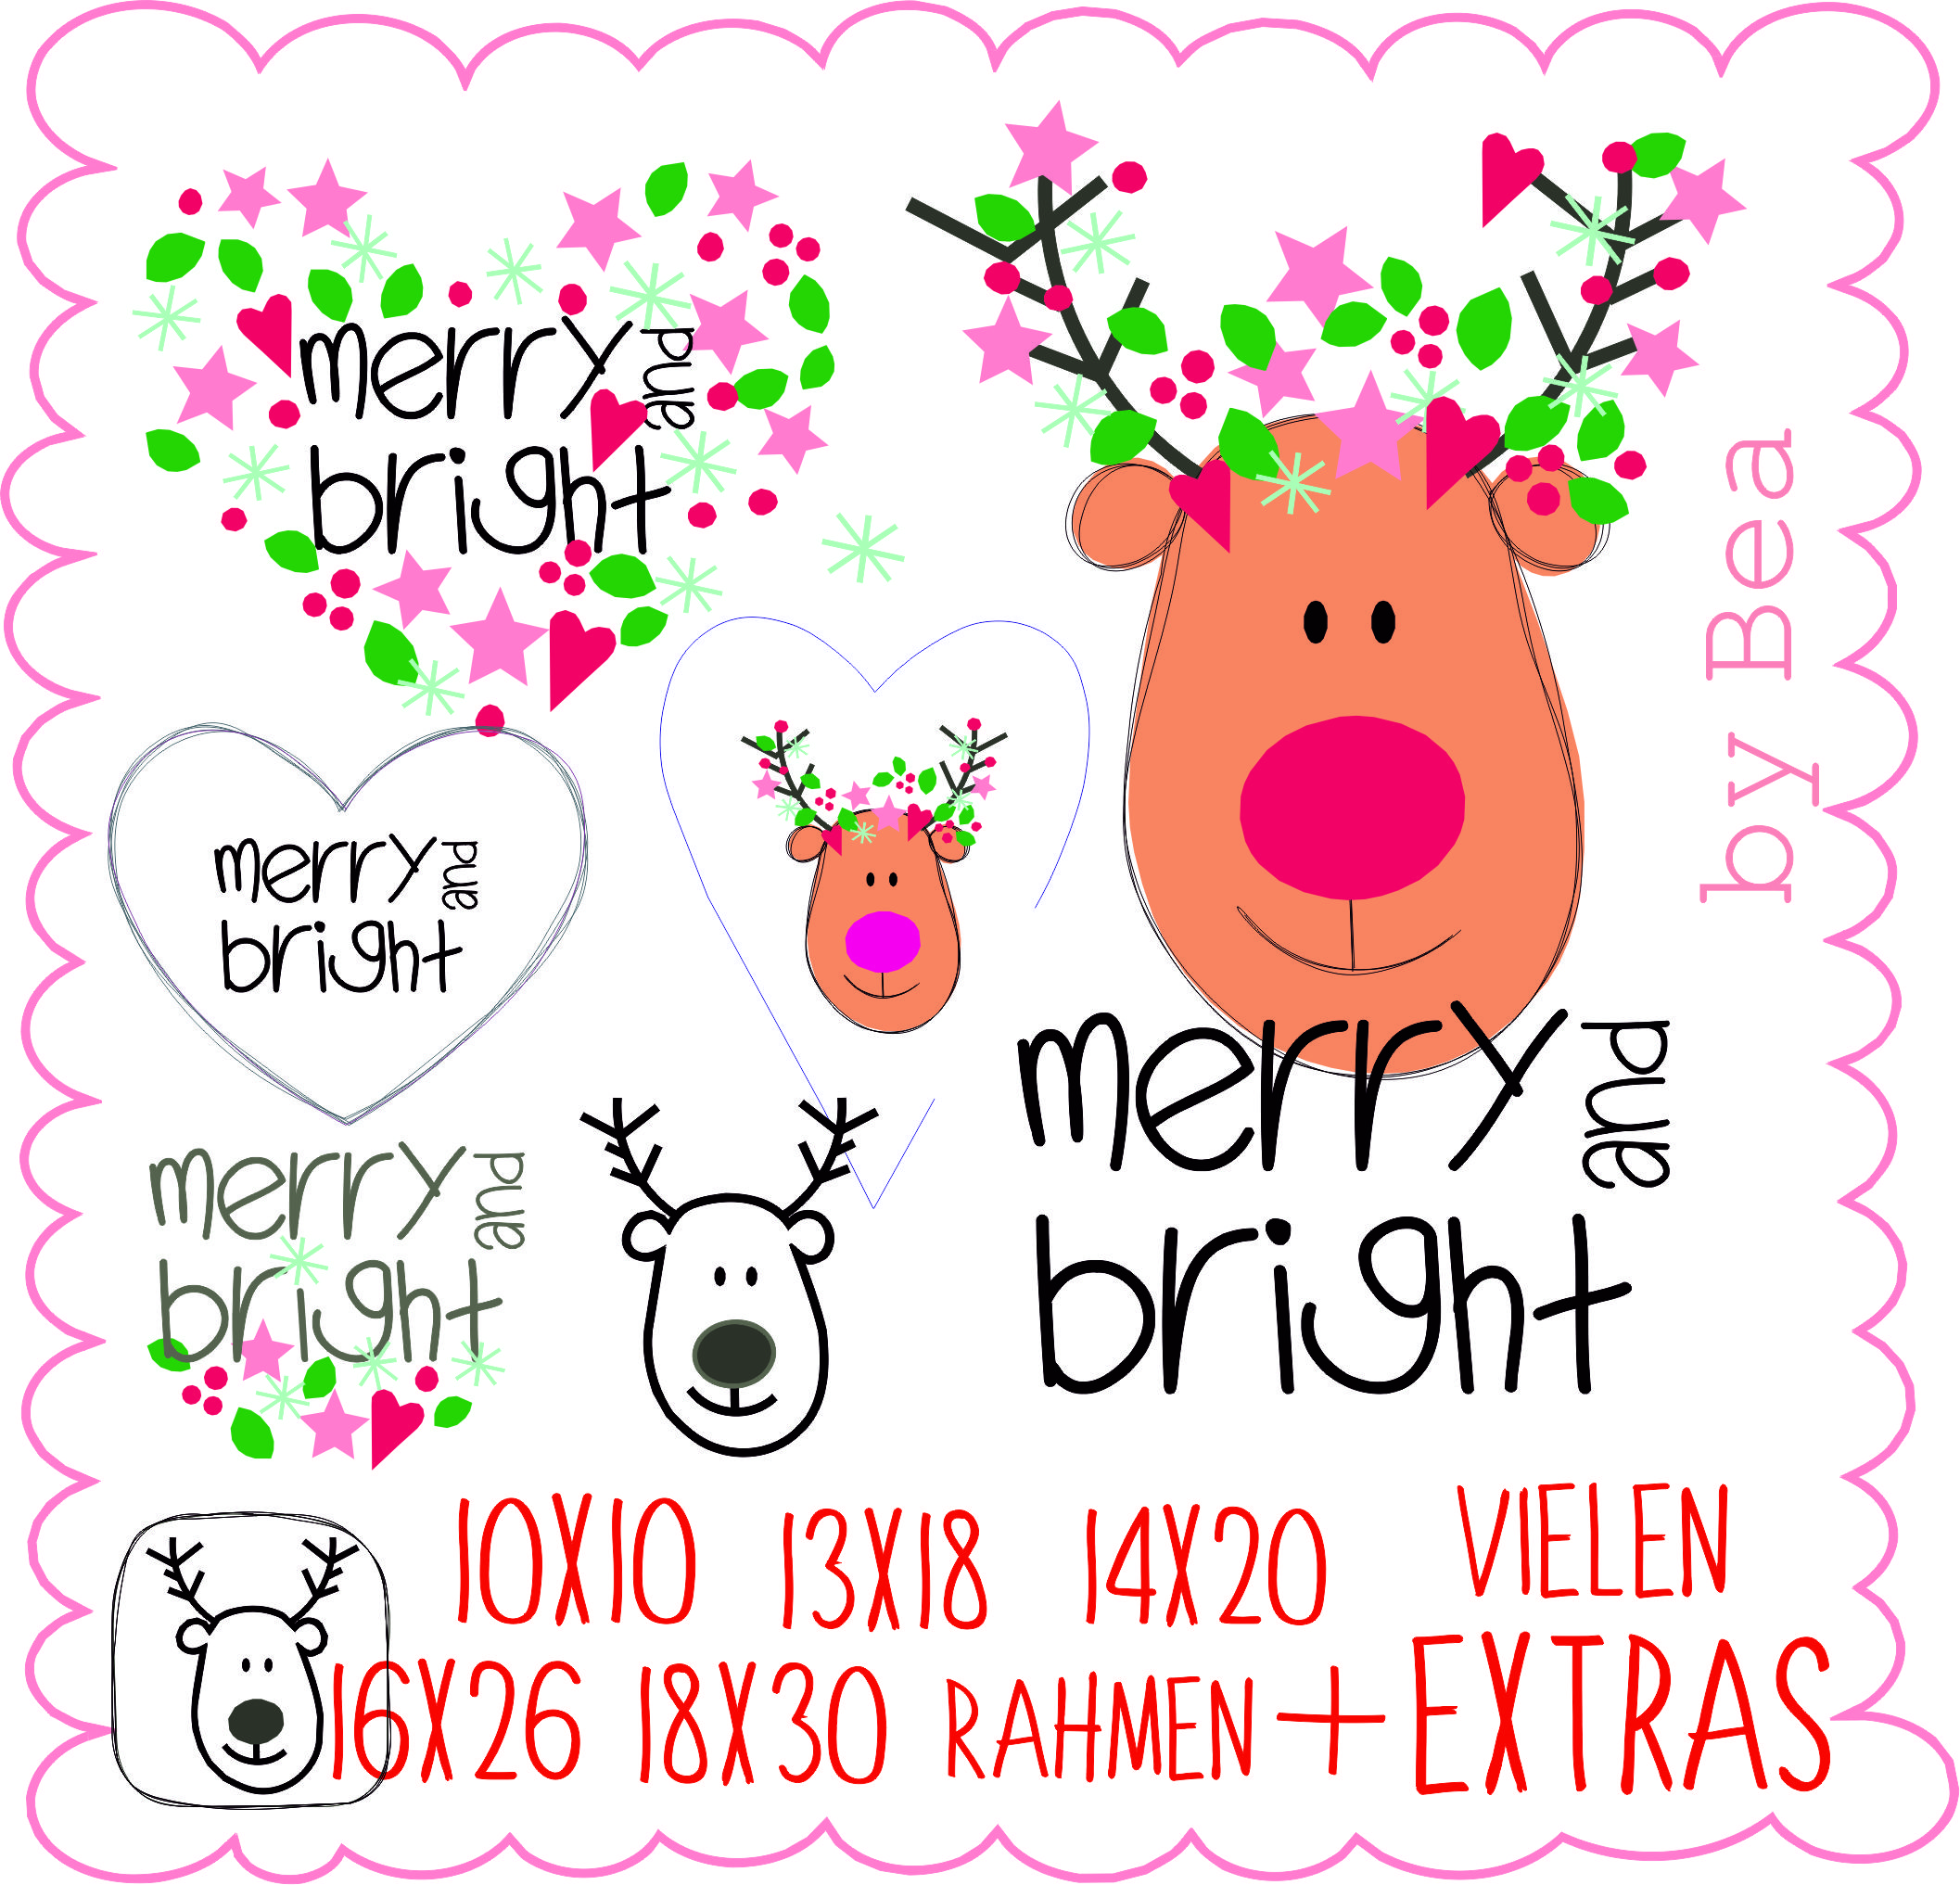 vorlage-merry-and-brightVdgCqxsdKWSXy